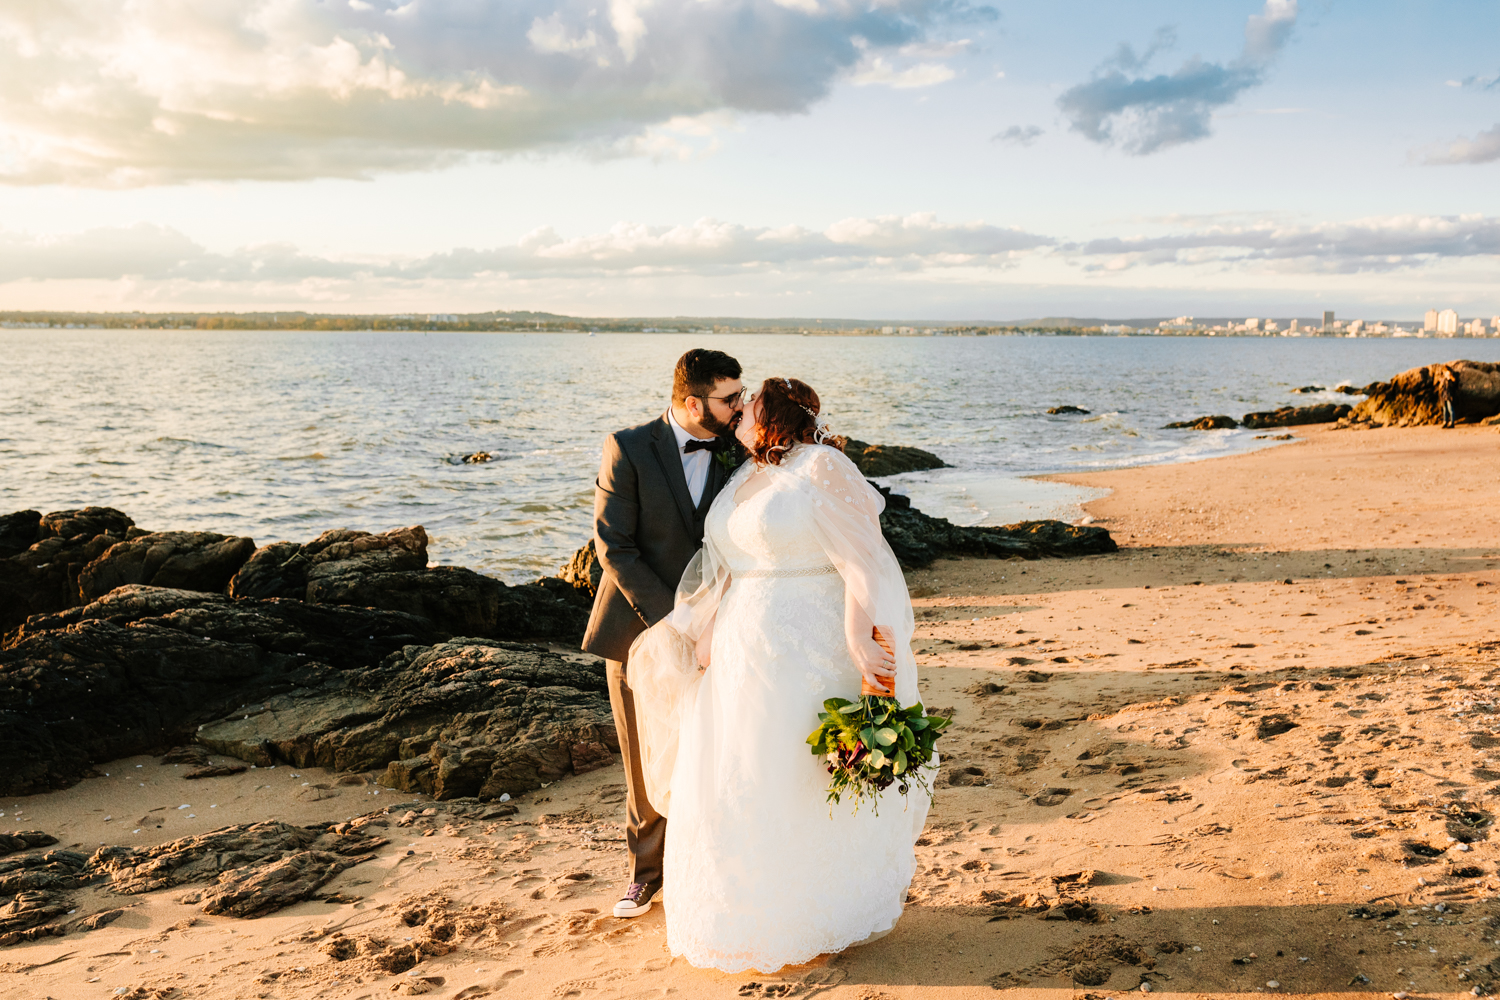 Bride and groom kiss on beach during sunset